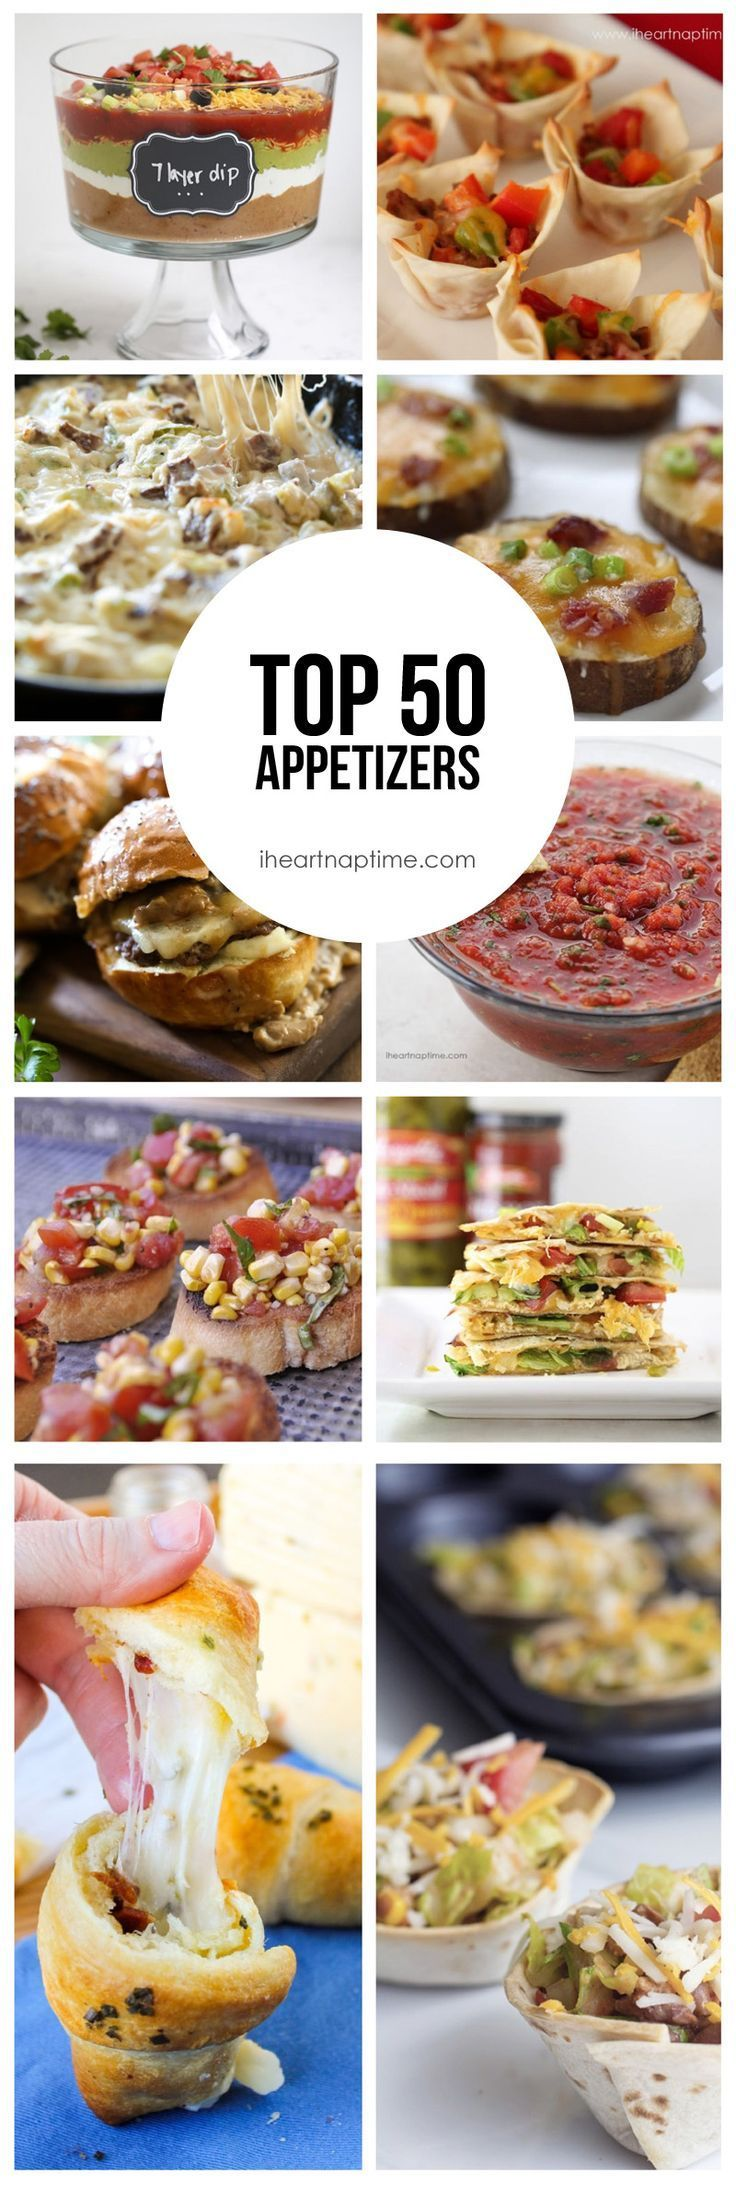 Top 50 Appetizers on iheartnaptime.com ...amazing list of recipes!